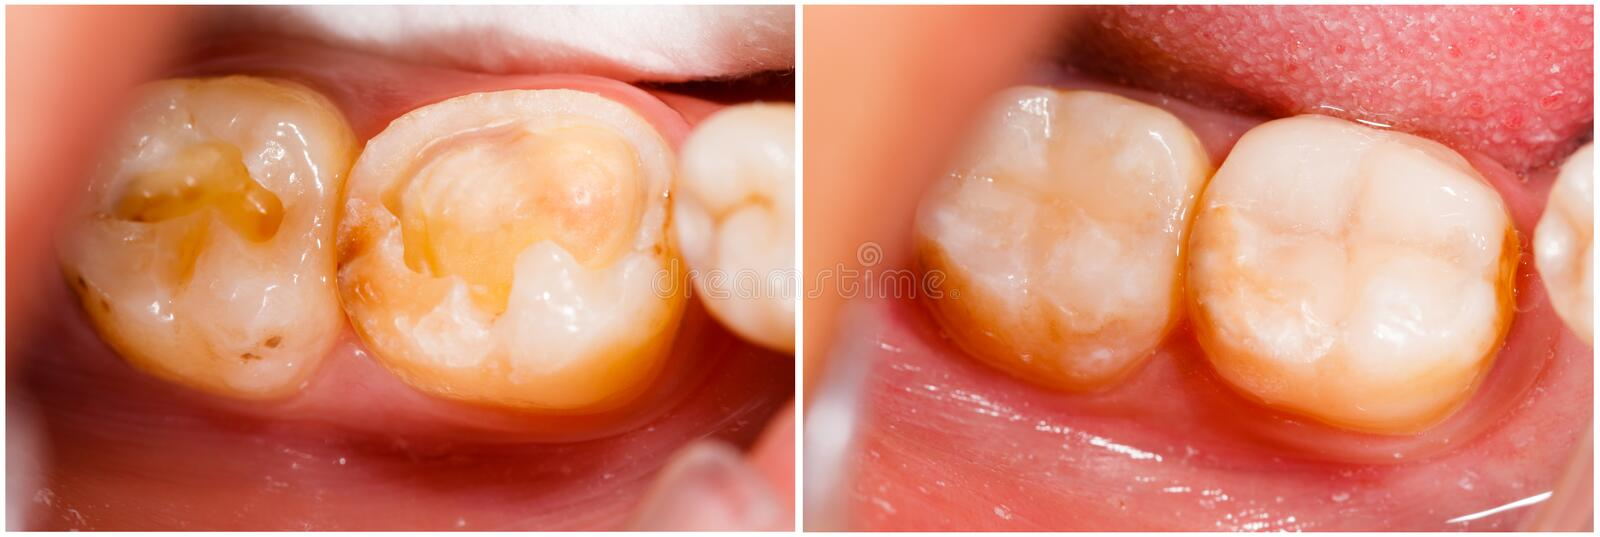 Before and After Behandeling stock foto's